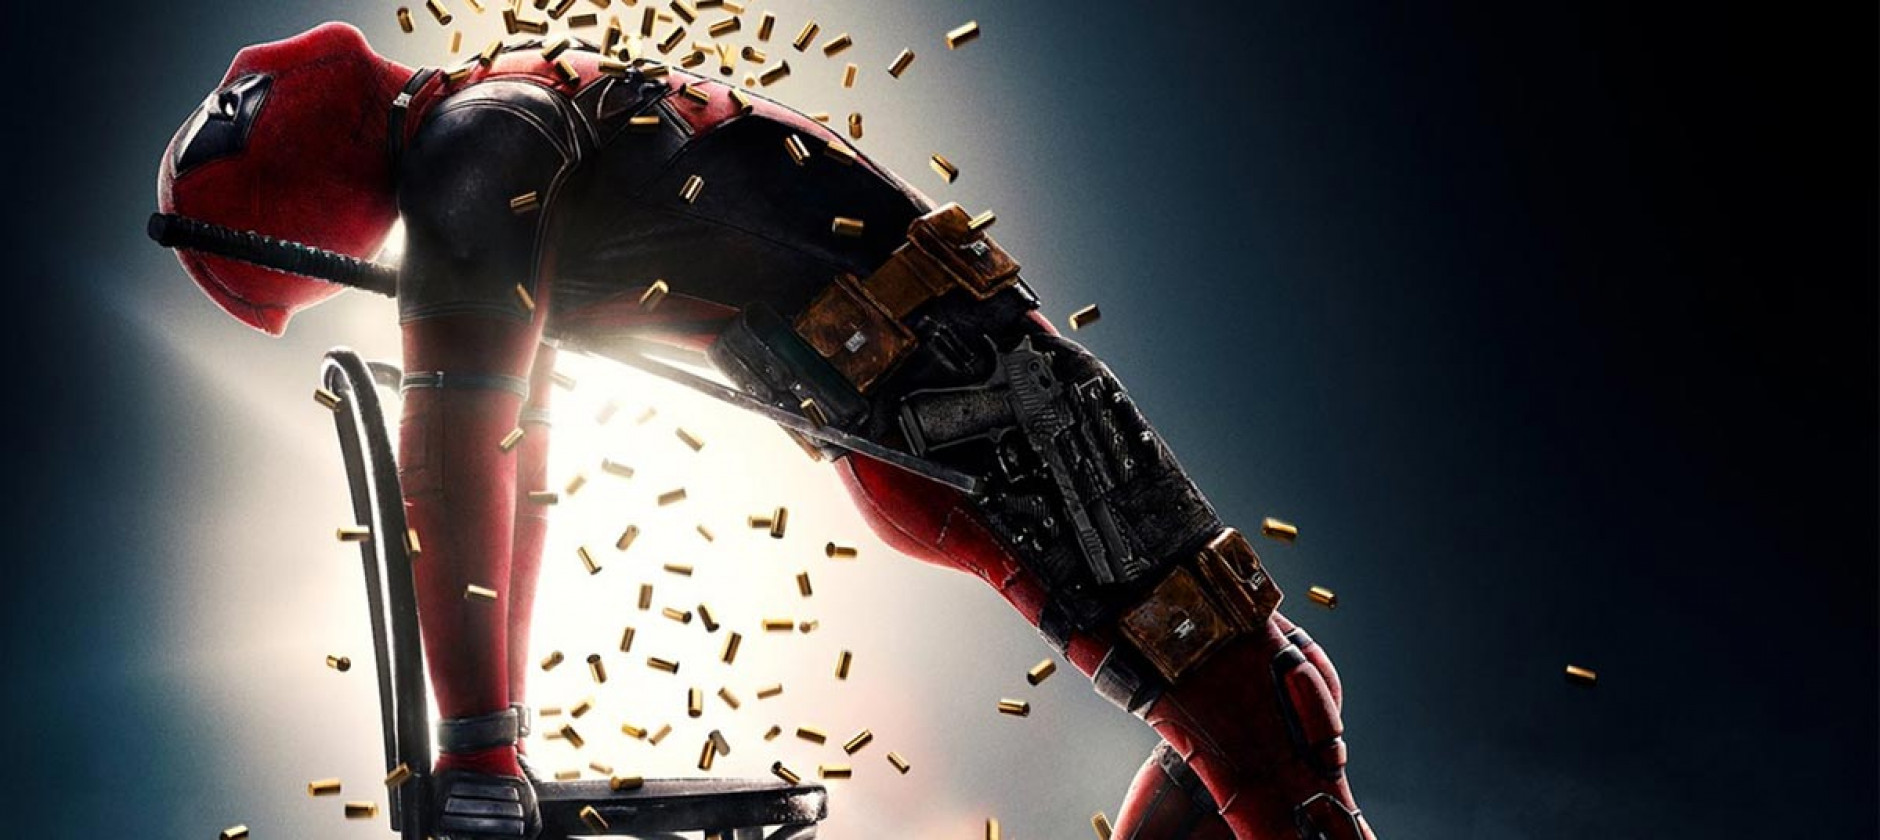 Deadpool 2, il ritorno del supereroe folle e irriverente